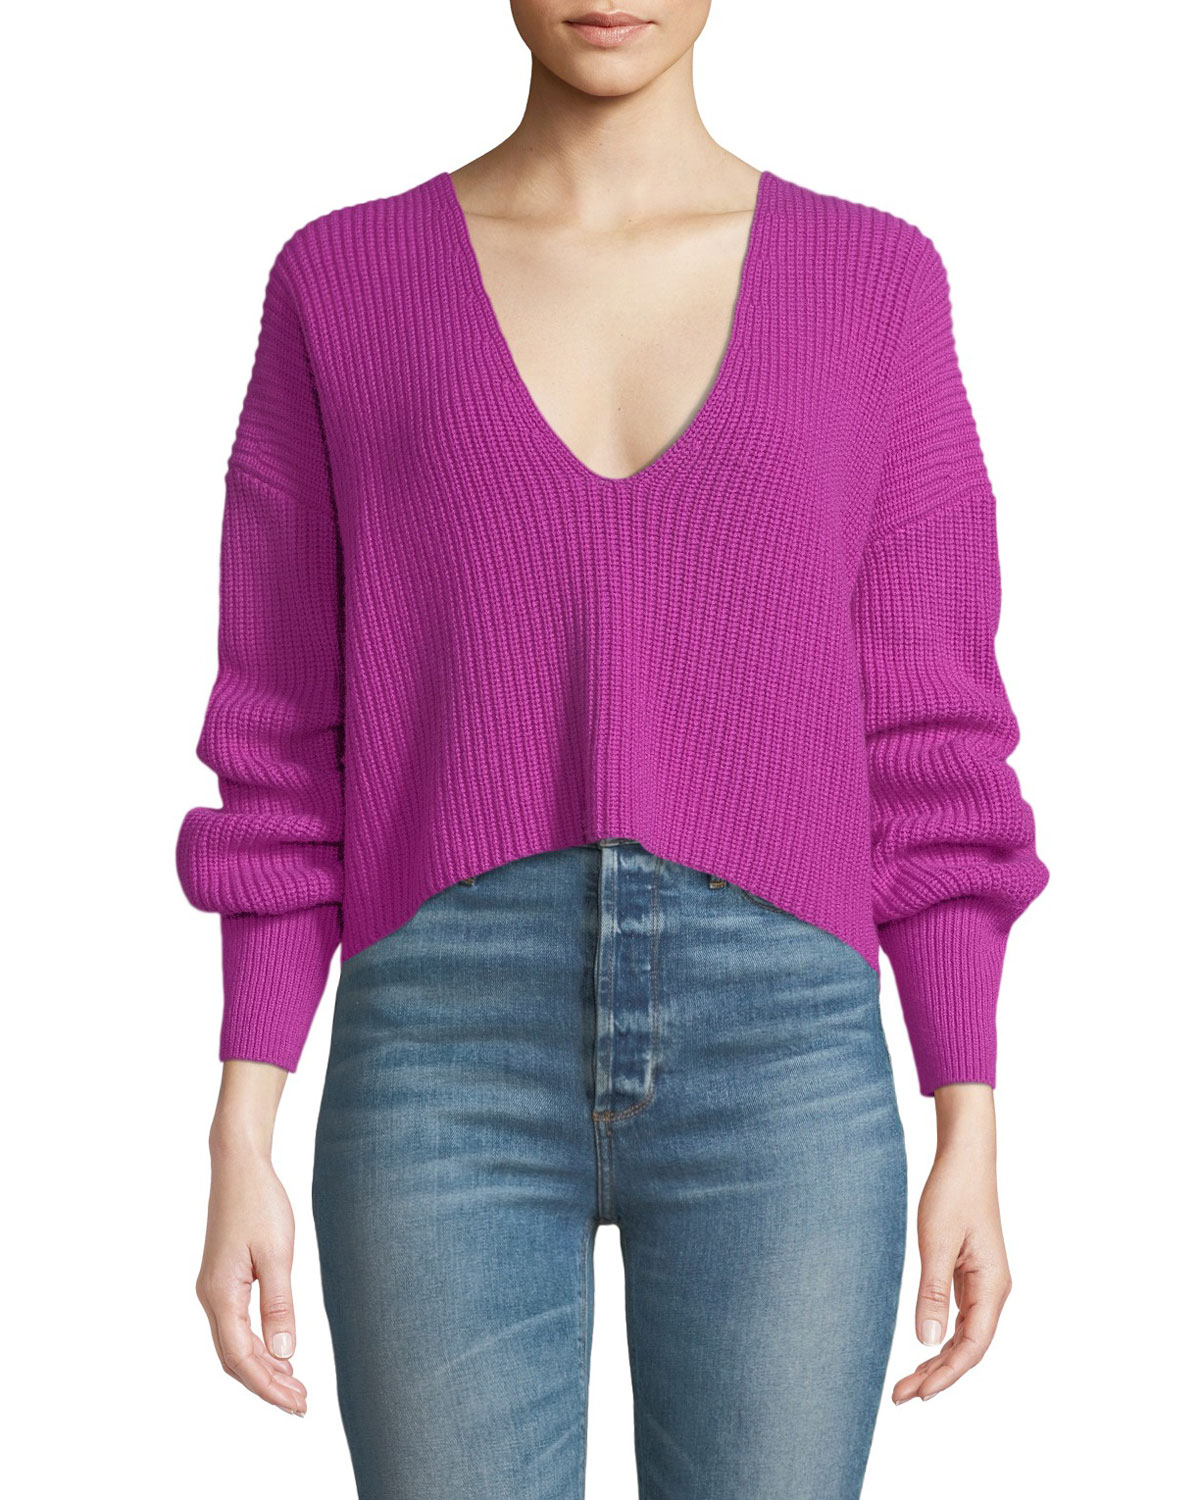 Melanie Rib-Knit Wool Sweater - Pink Size S